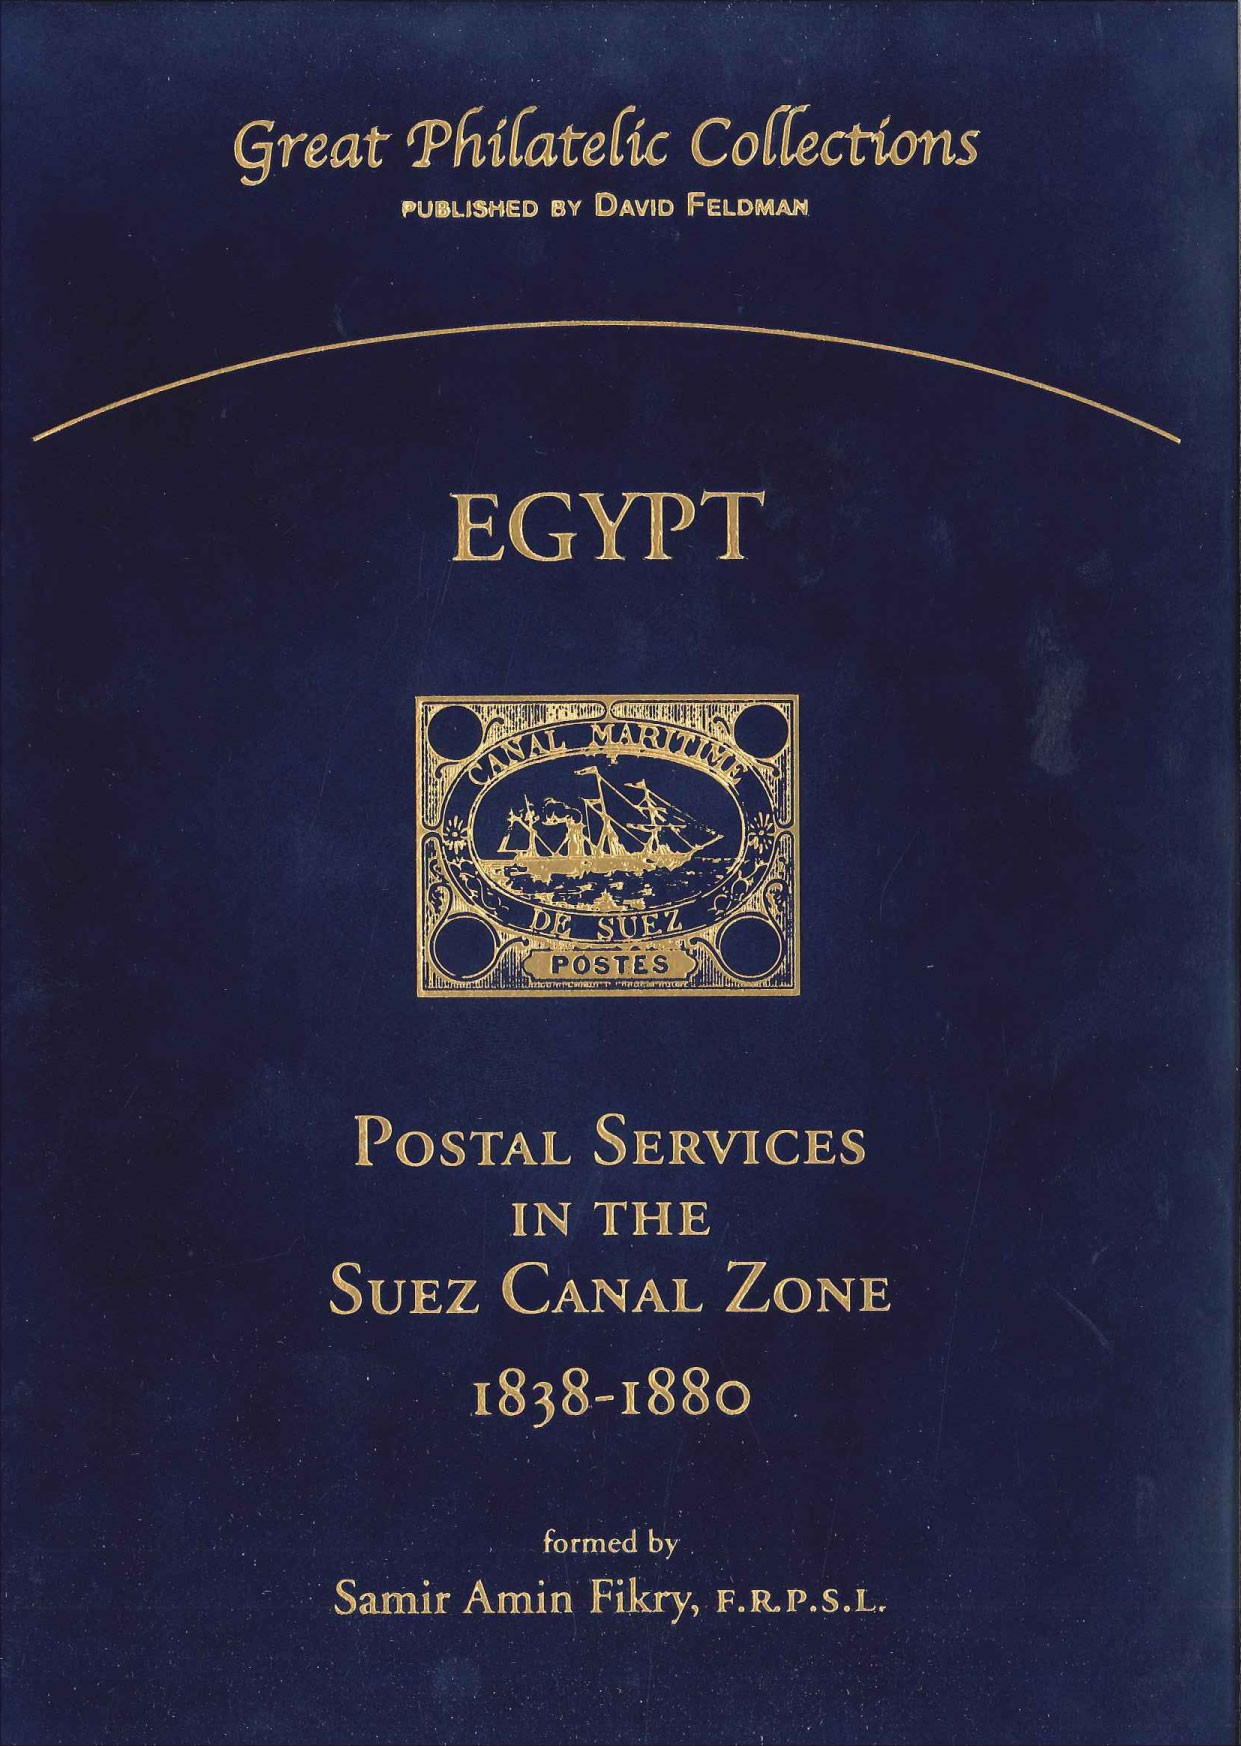 Great Philatelic Collections Egypt, postal Service, stamps, Suez Canal Zone